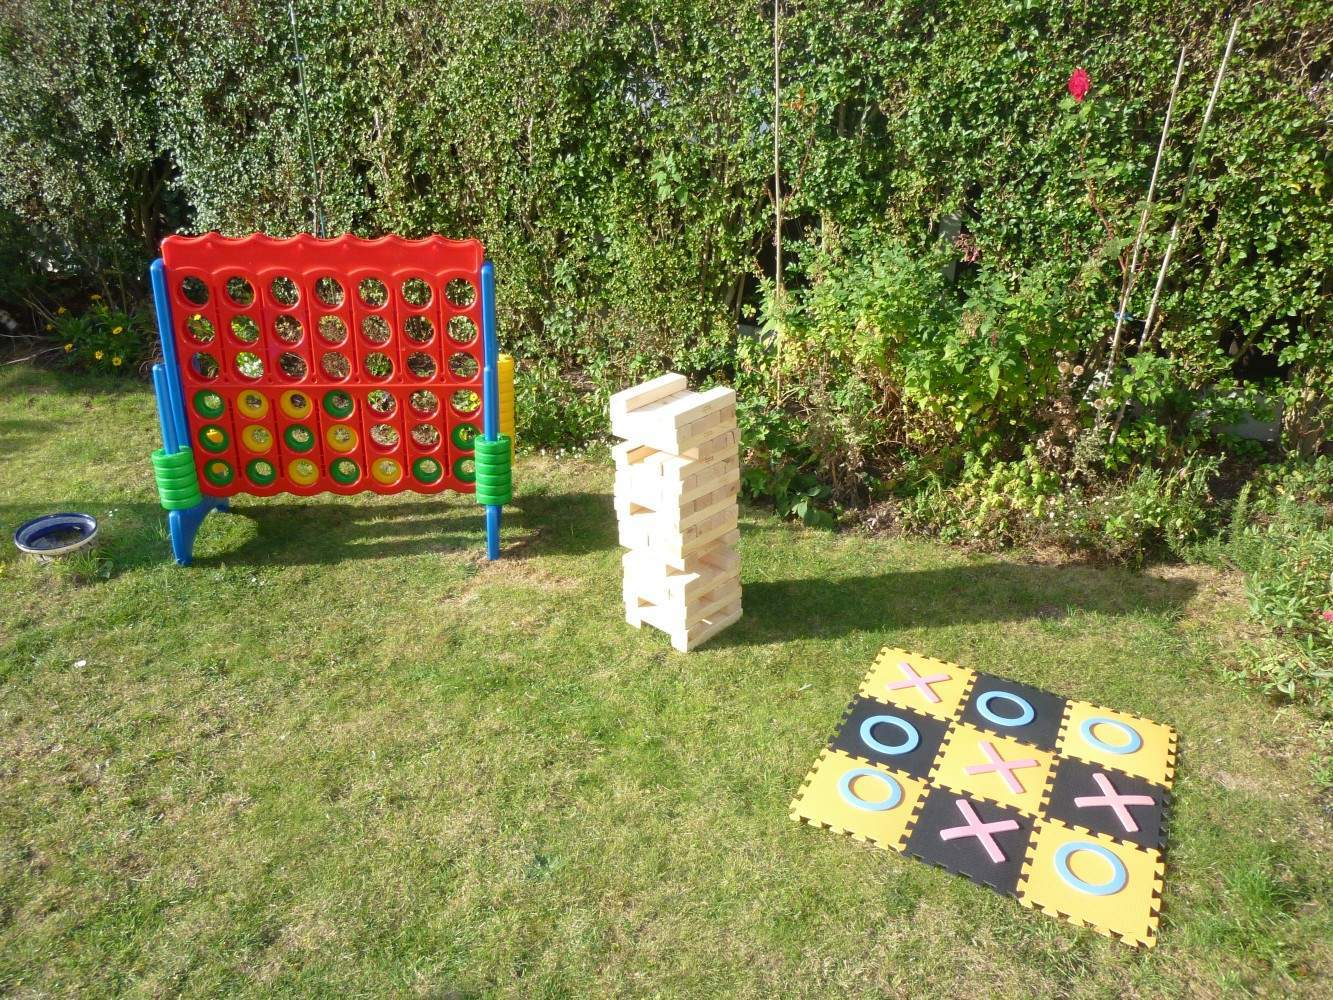 giant garden games jenga connect 4 and noughts crosses. Black Bedroom Furniture Sets. Home Design Ideas